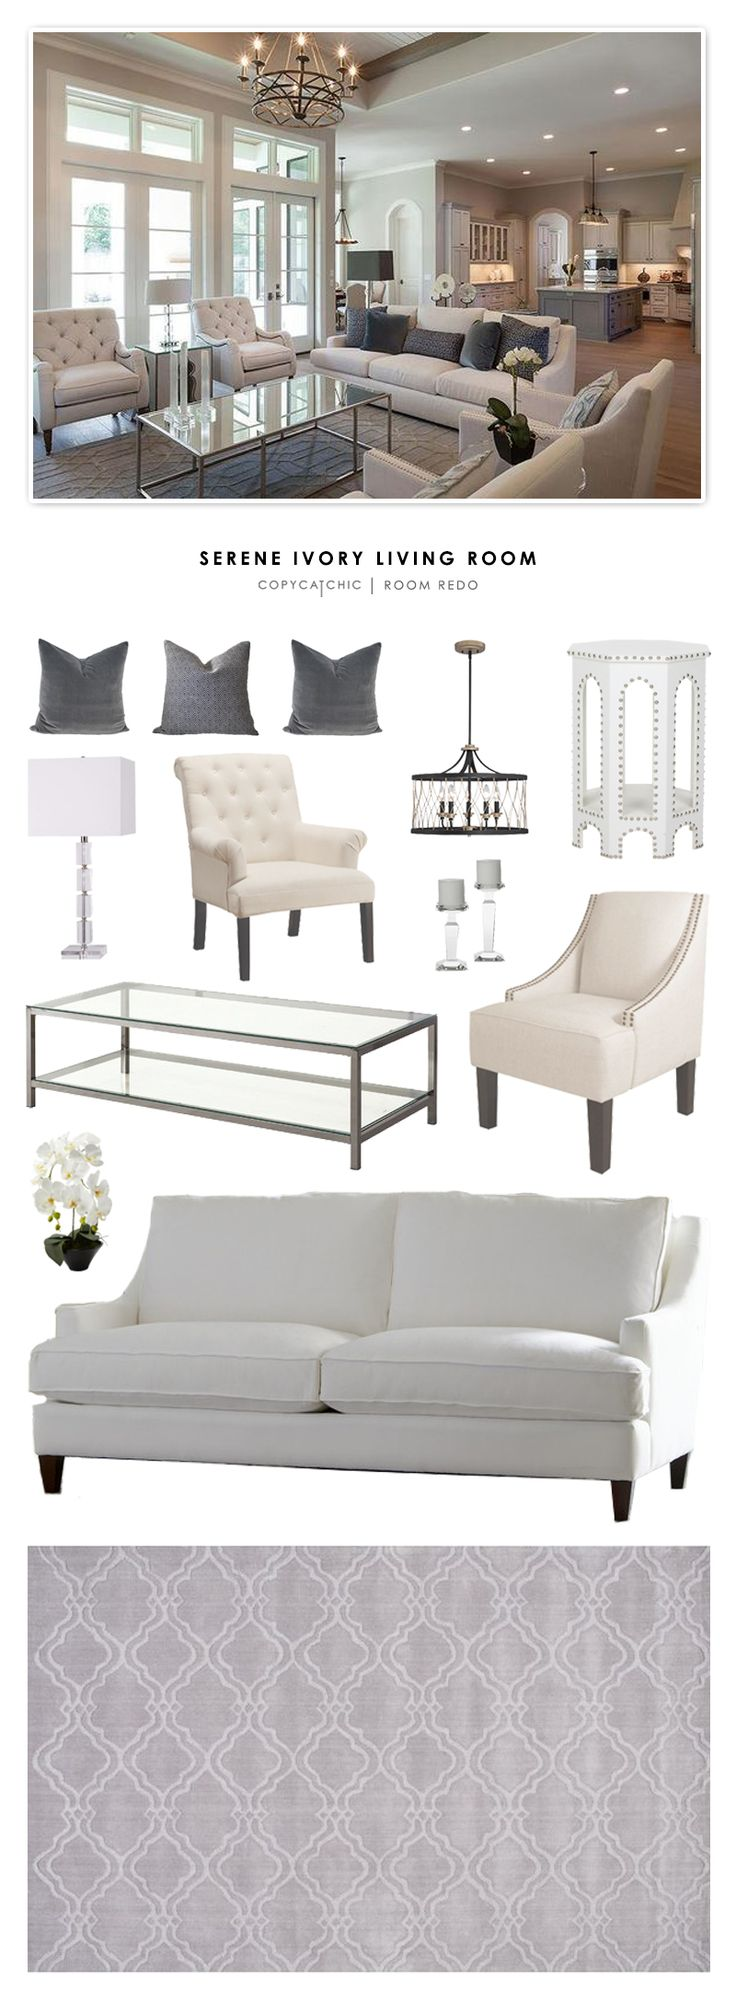 Copy Cat Chic Room Redo | Serene Ivory Living Room